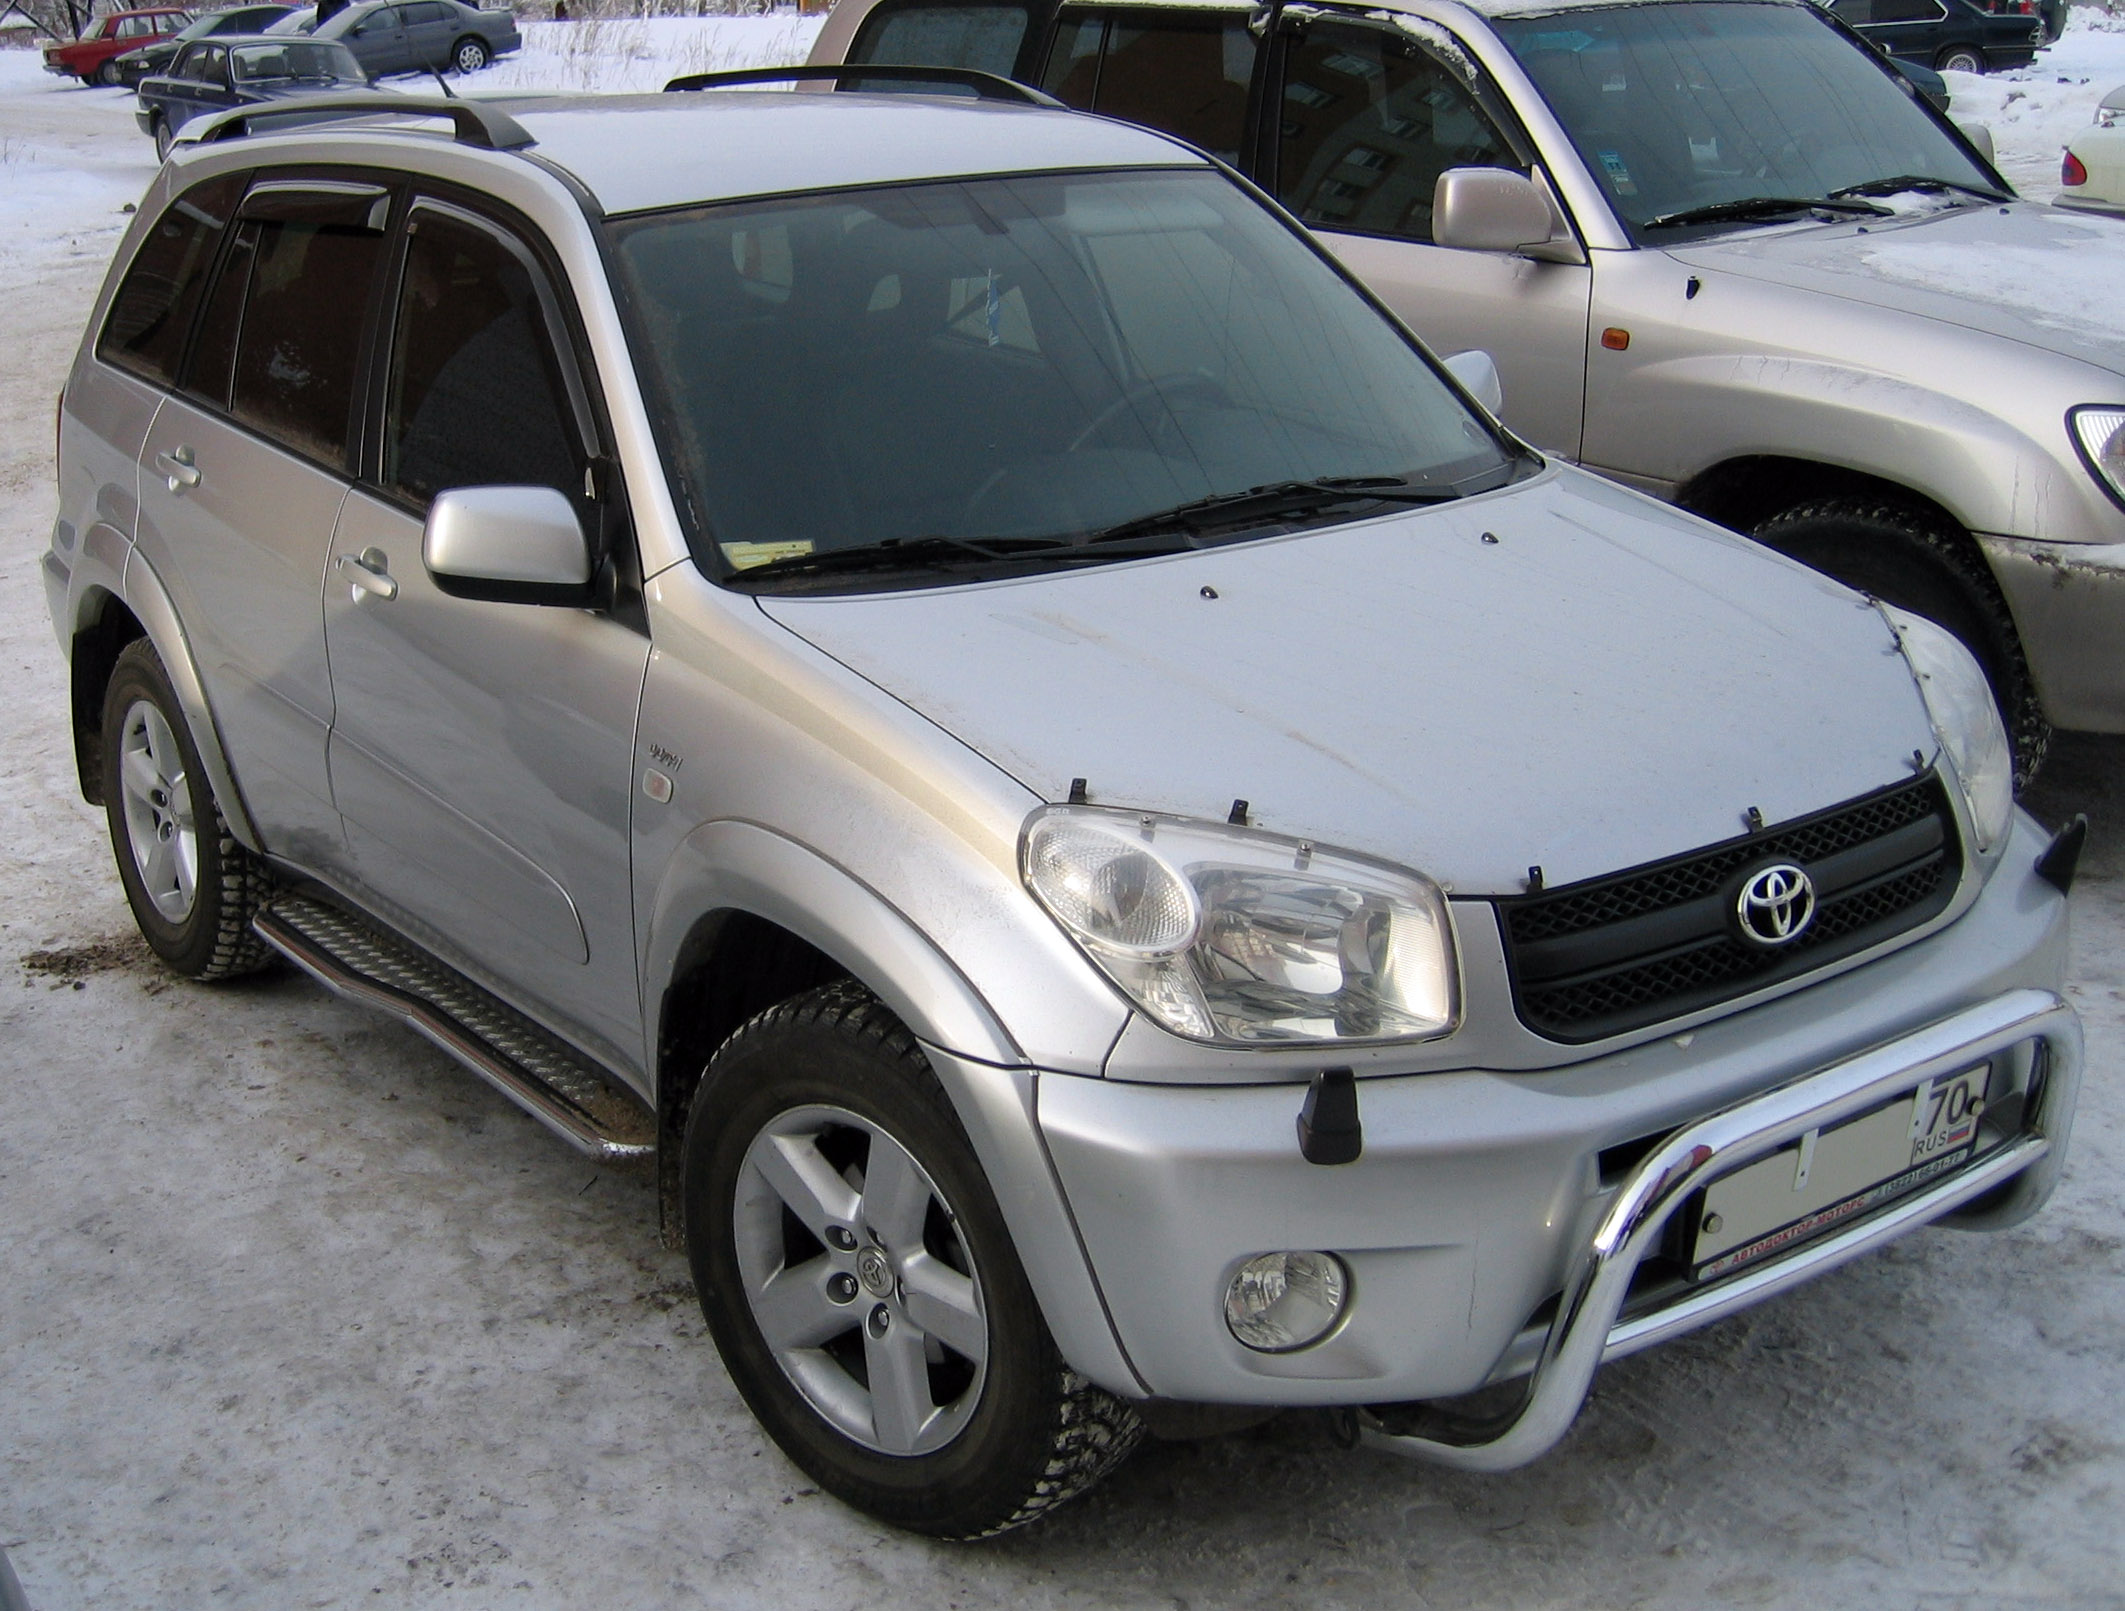 2004 toyota rav 4 ii pictures information and specs. Black Bedroom Furniture Sets. Home Design Ideas